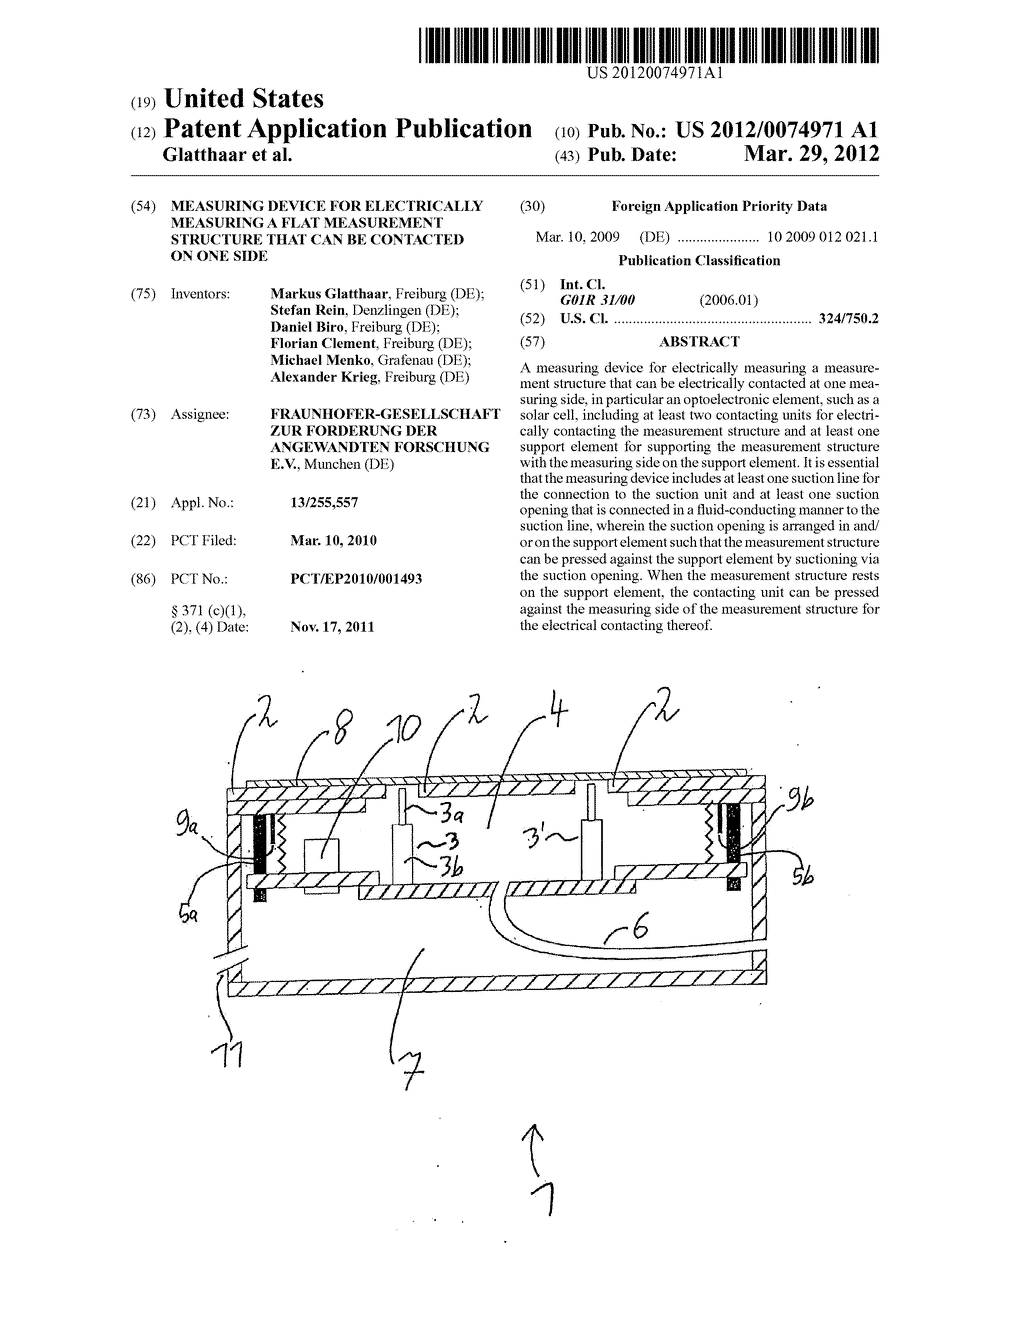 MEASURING DEVICE FOR ELECTRICALLY MEASURING A FLAT MEASUREMENT STRUCTURE     THAT CAN BE CONTACTED ON ONE SIDE - diagram, schematic, and image 01